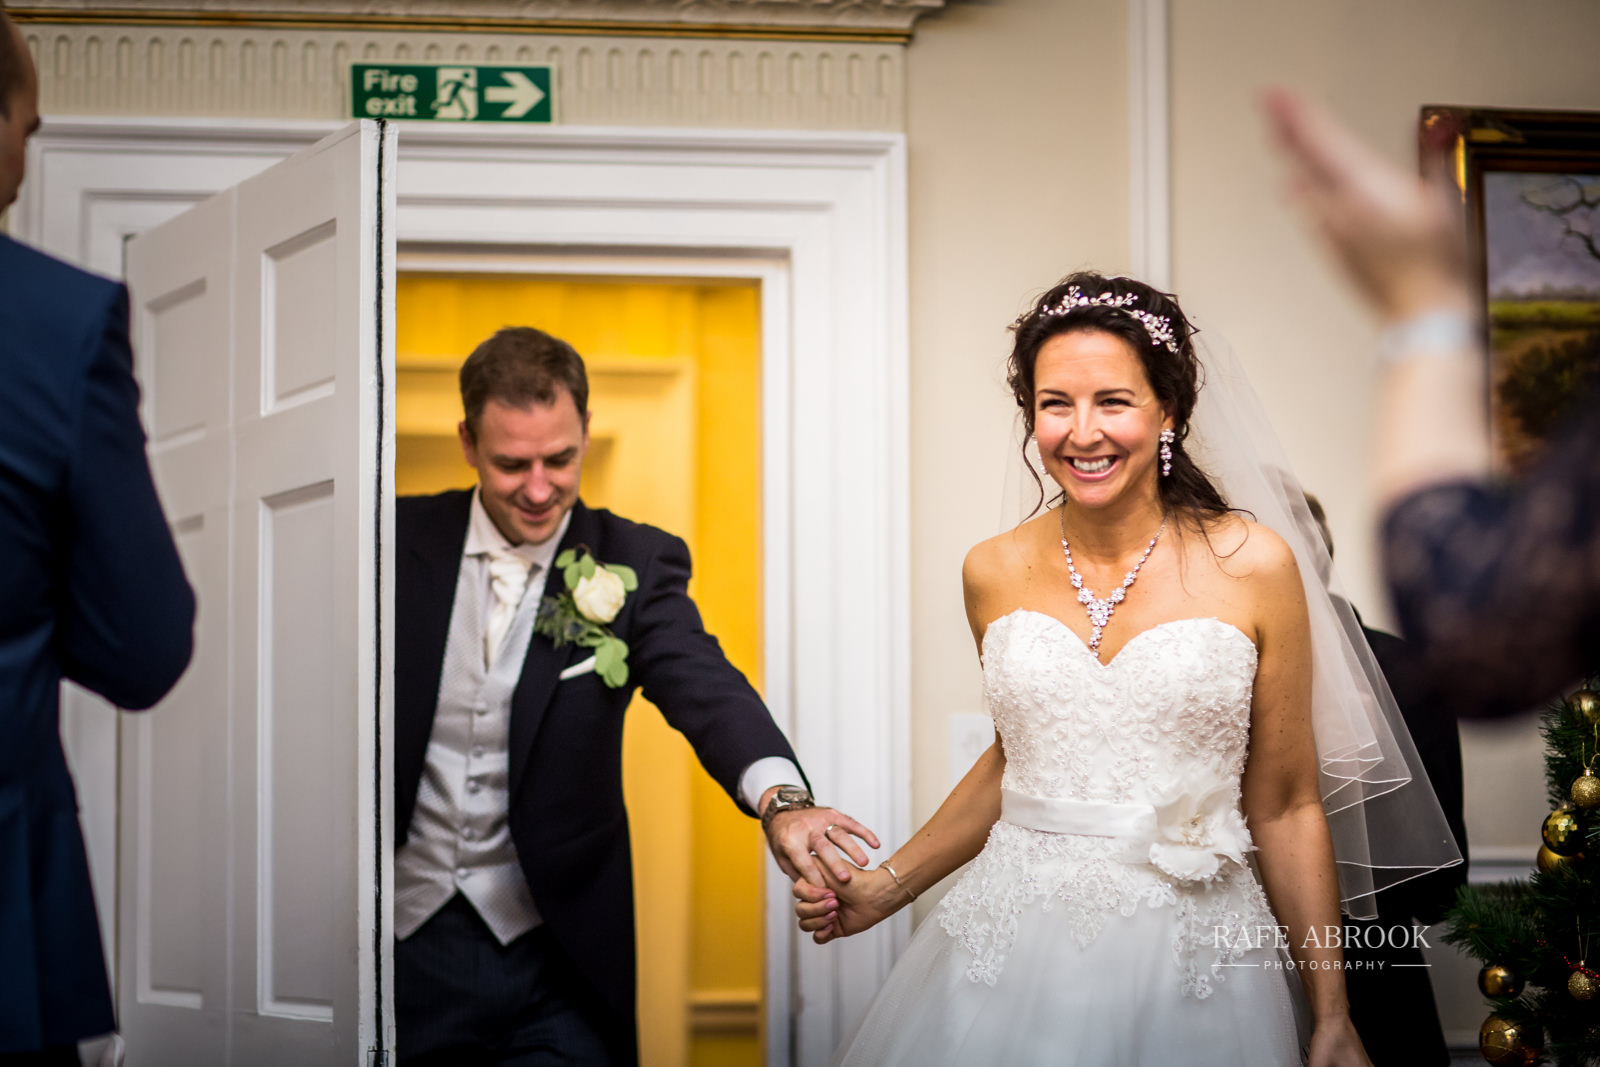 goldsborough hall wedding harrogate knaresborough yorkshire hertfordshire wedding photographer-1338.jpg